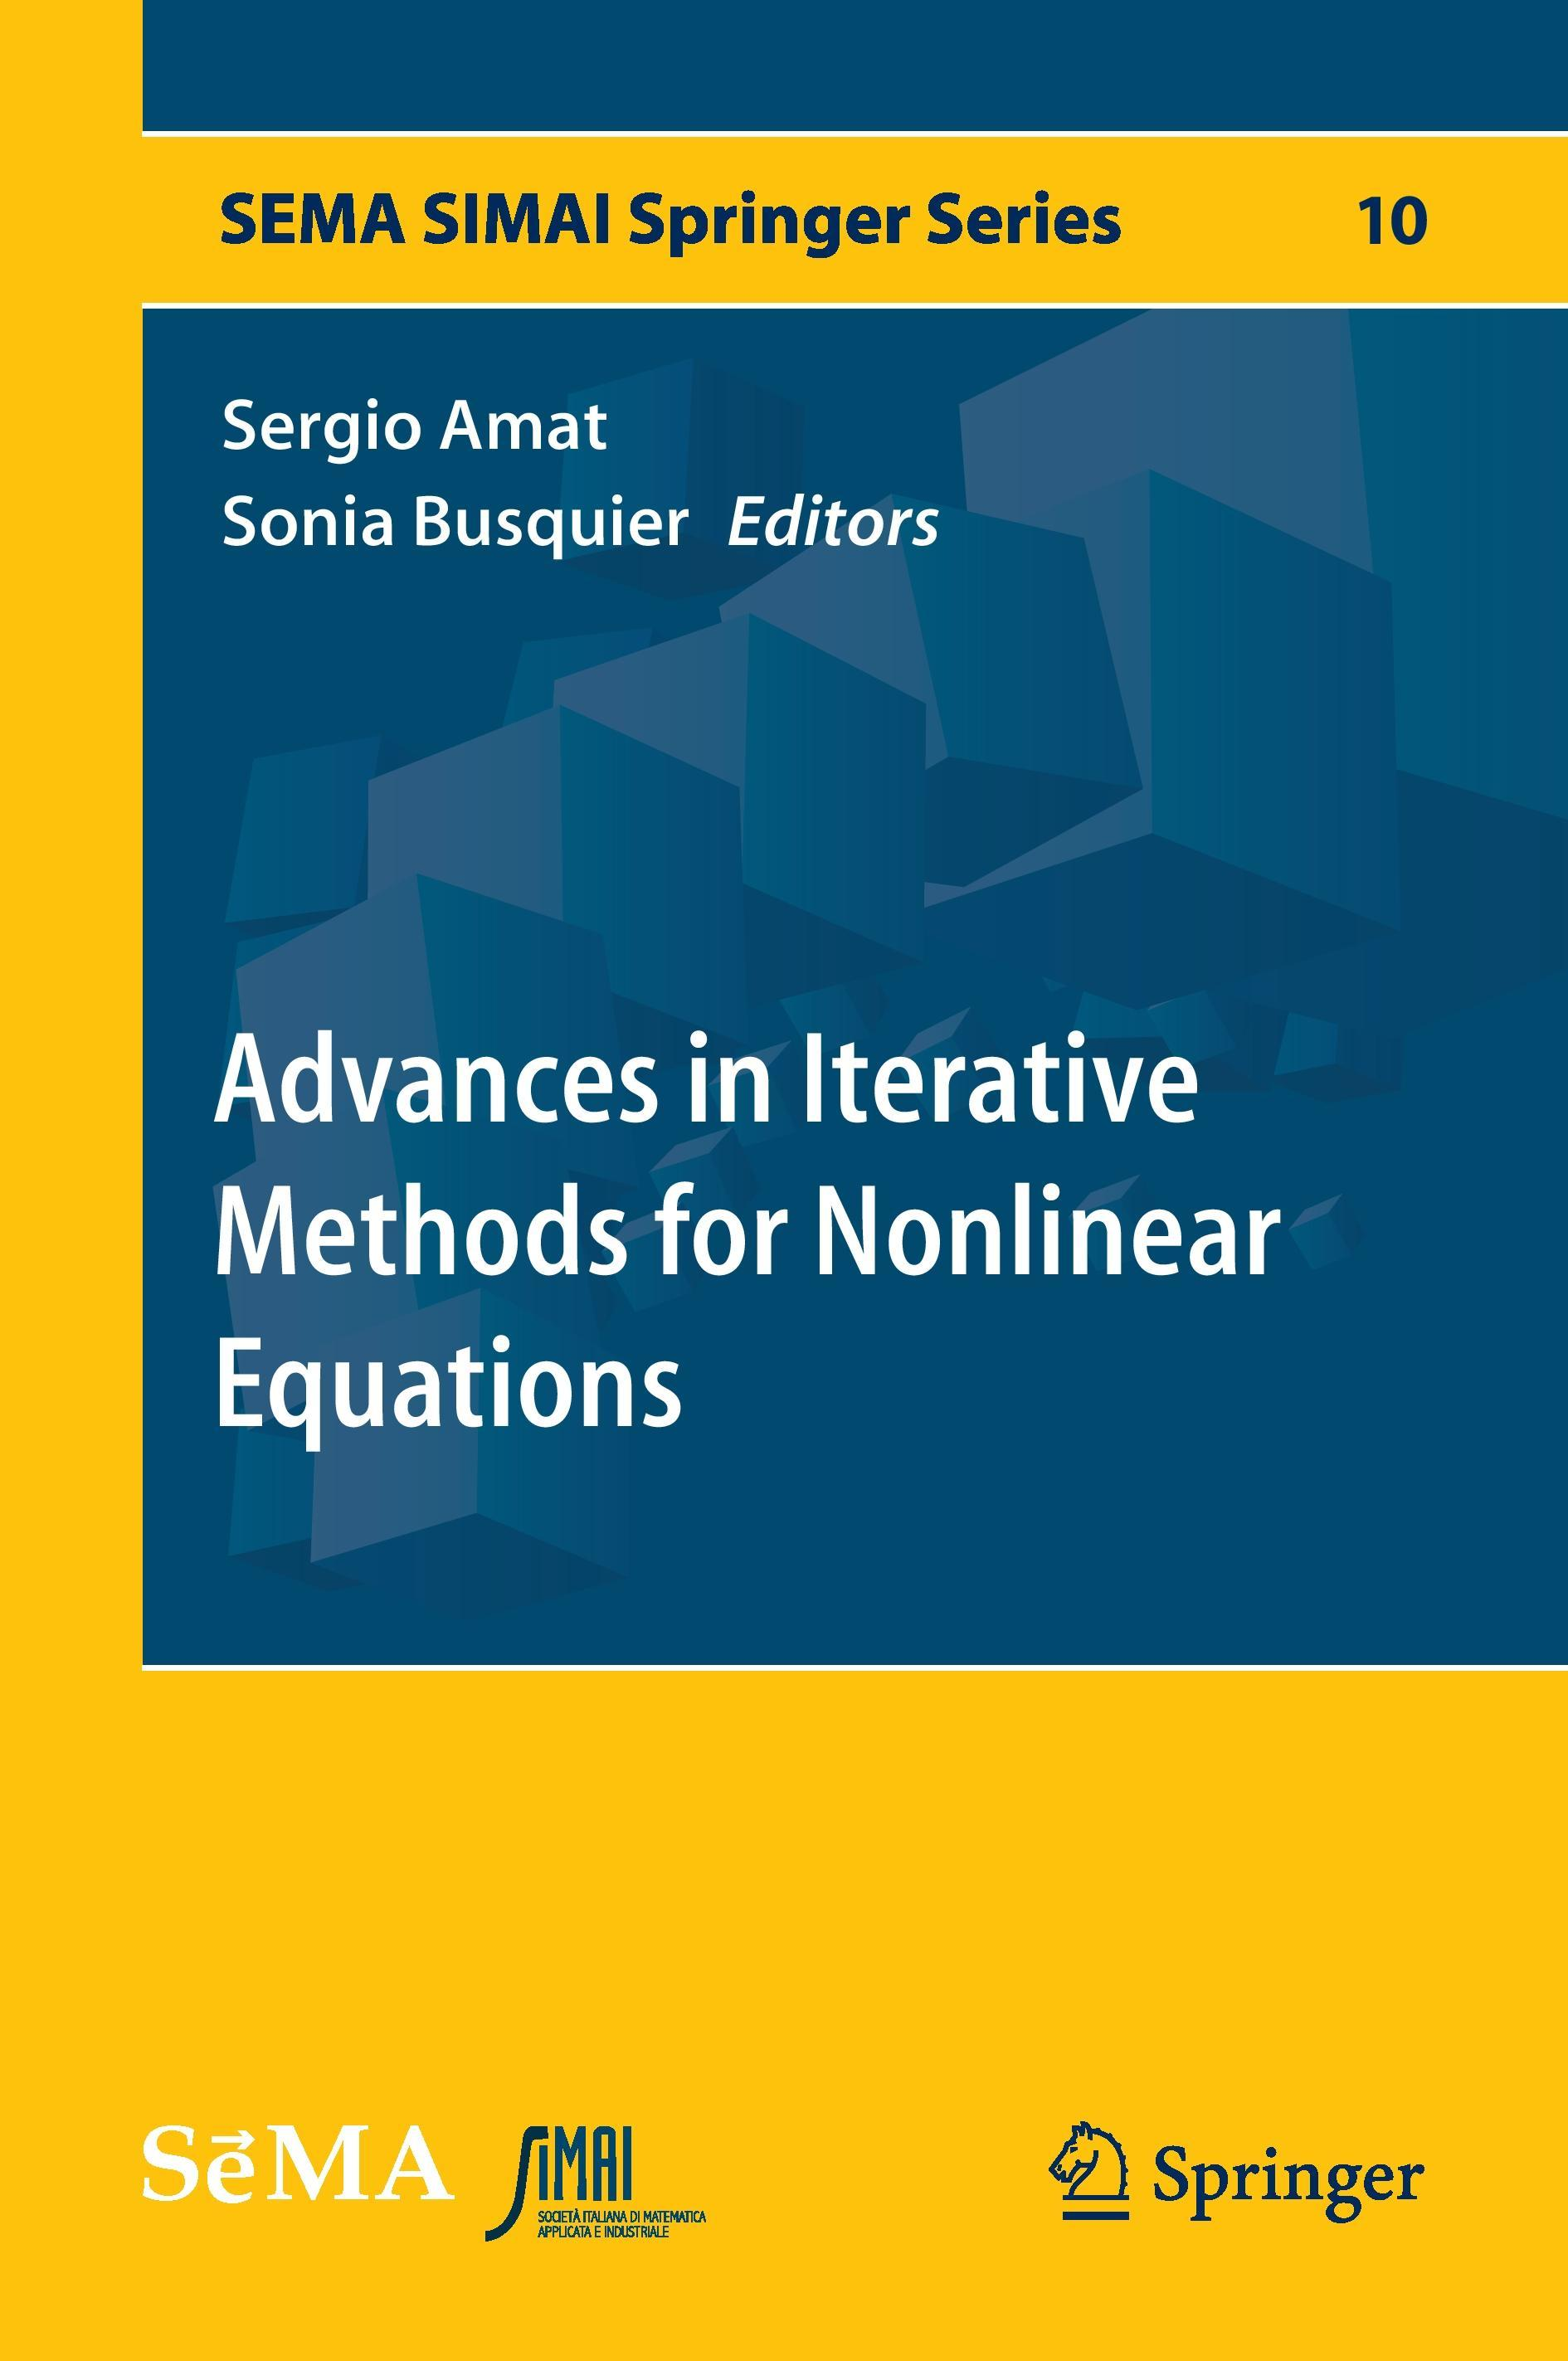 Advances in Iterative Methods for Nonlinear Equations Sergio Amat